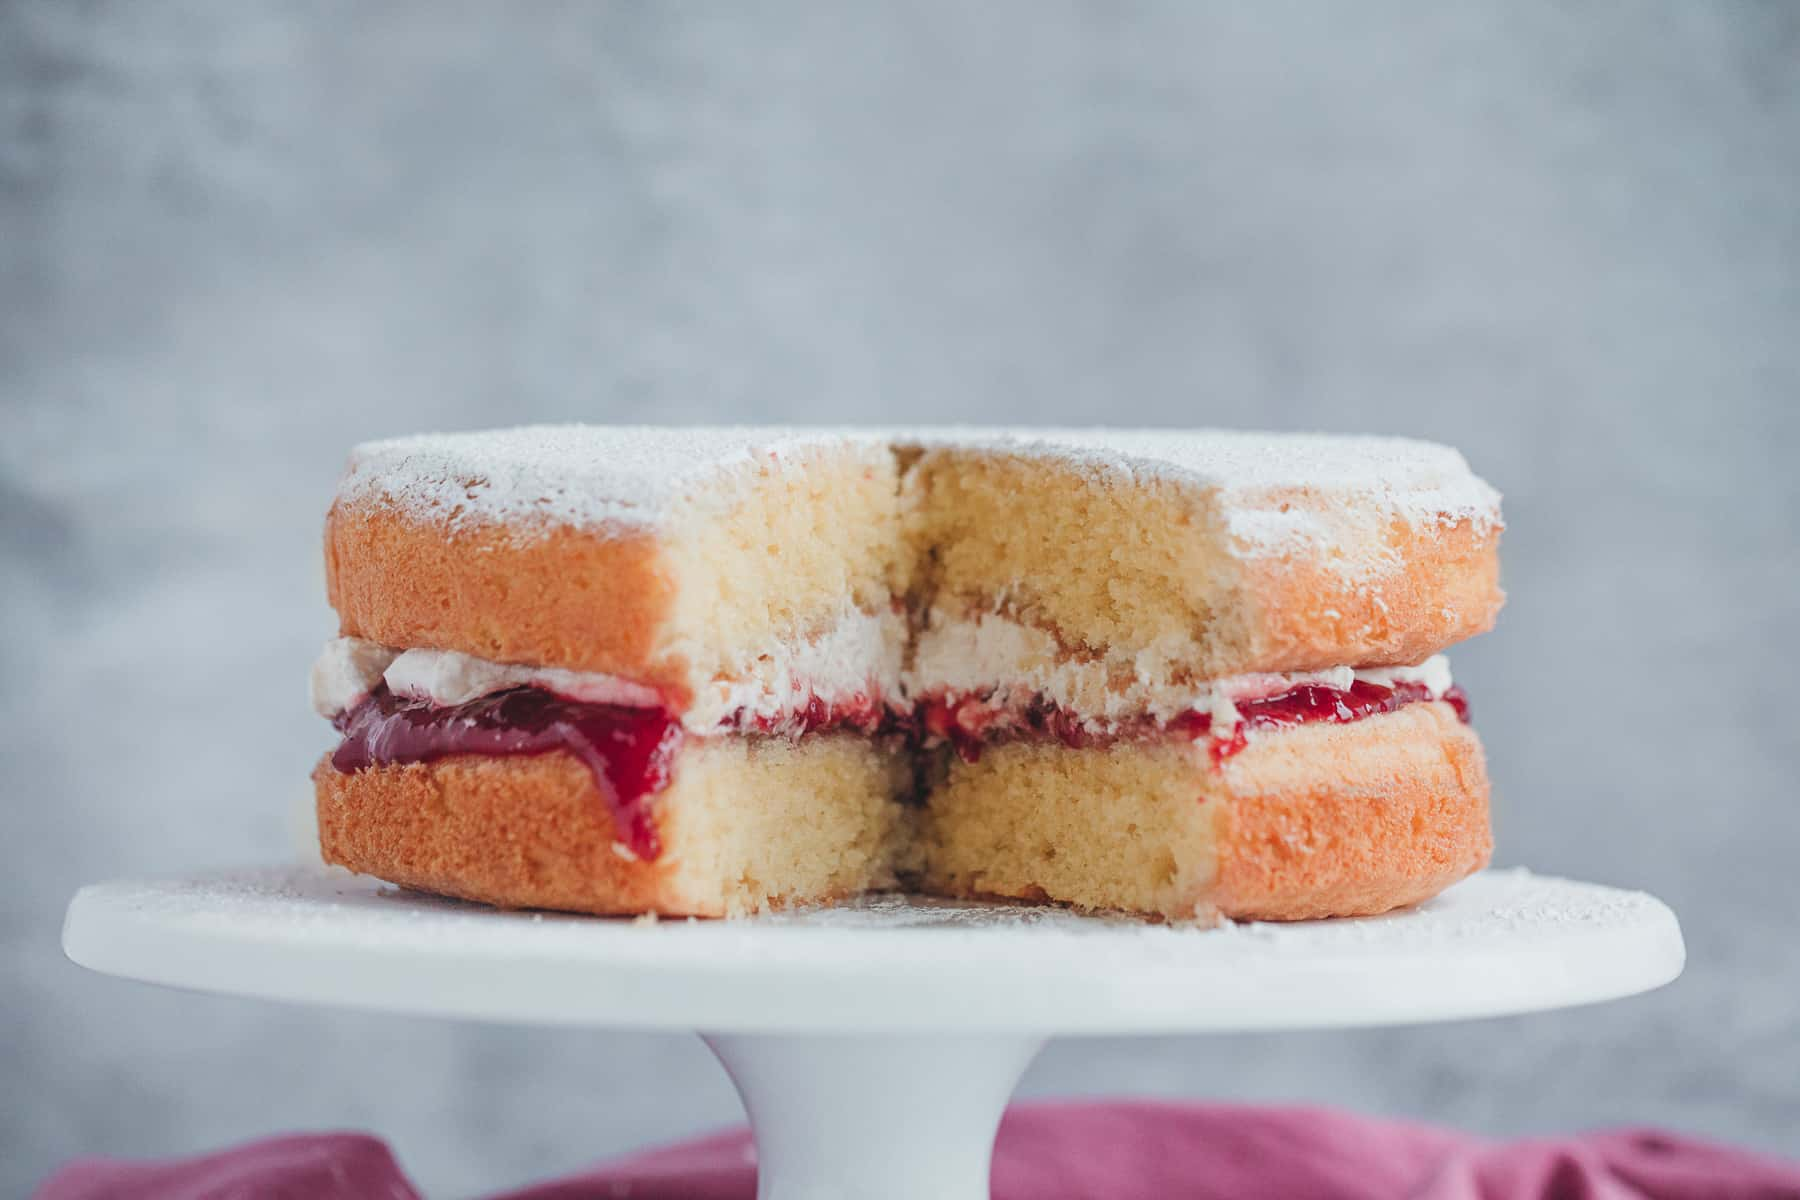 A Victoria Sandwich cake that has been sliced open. There is a cream and jam filling.